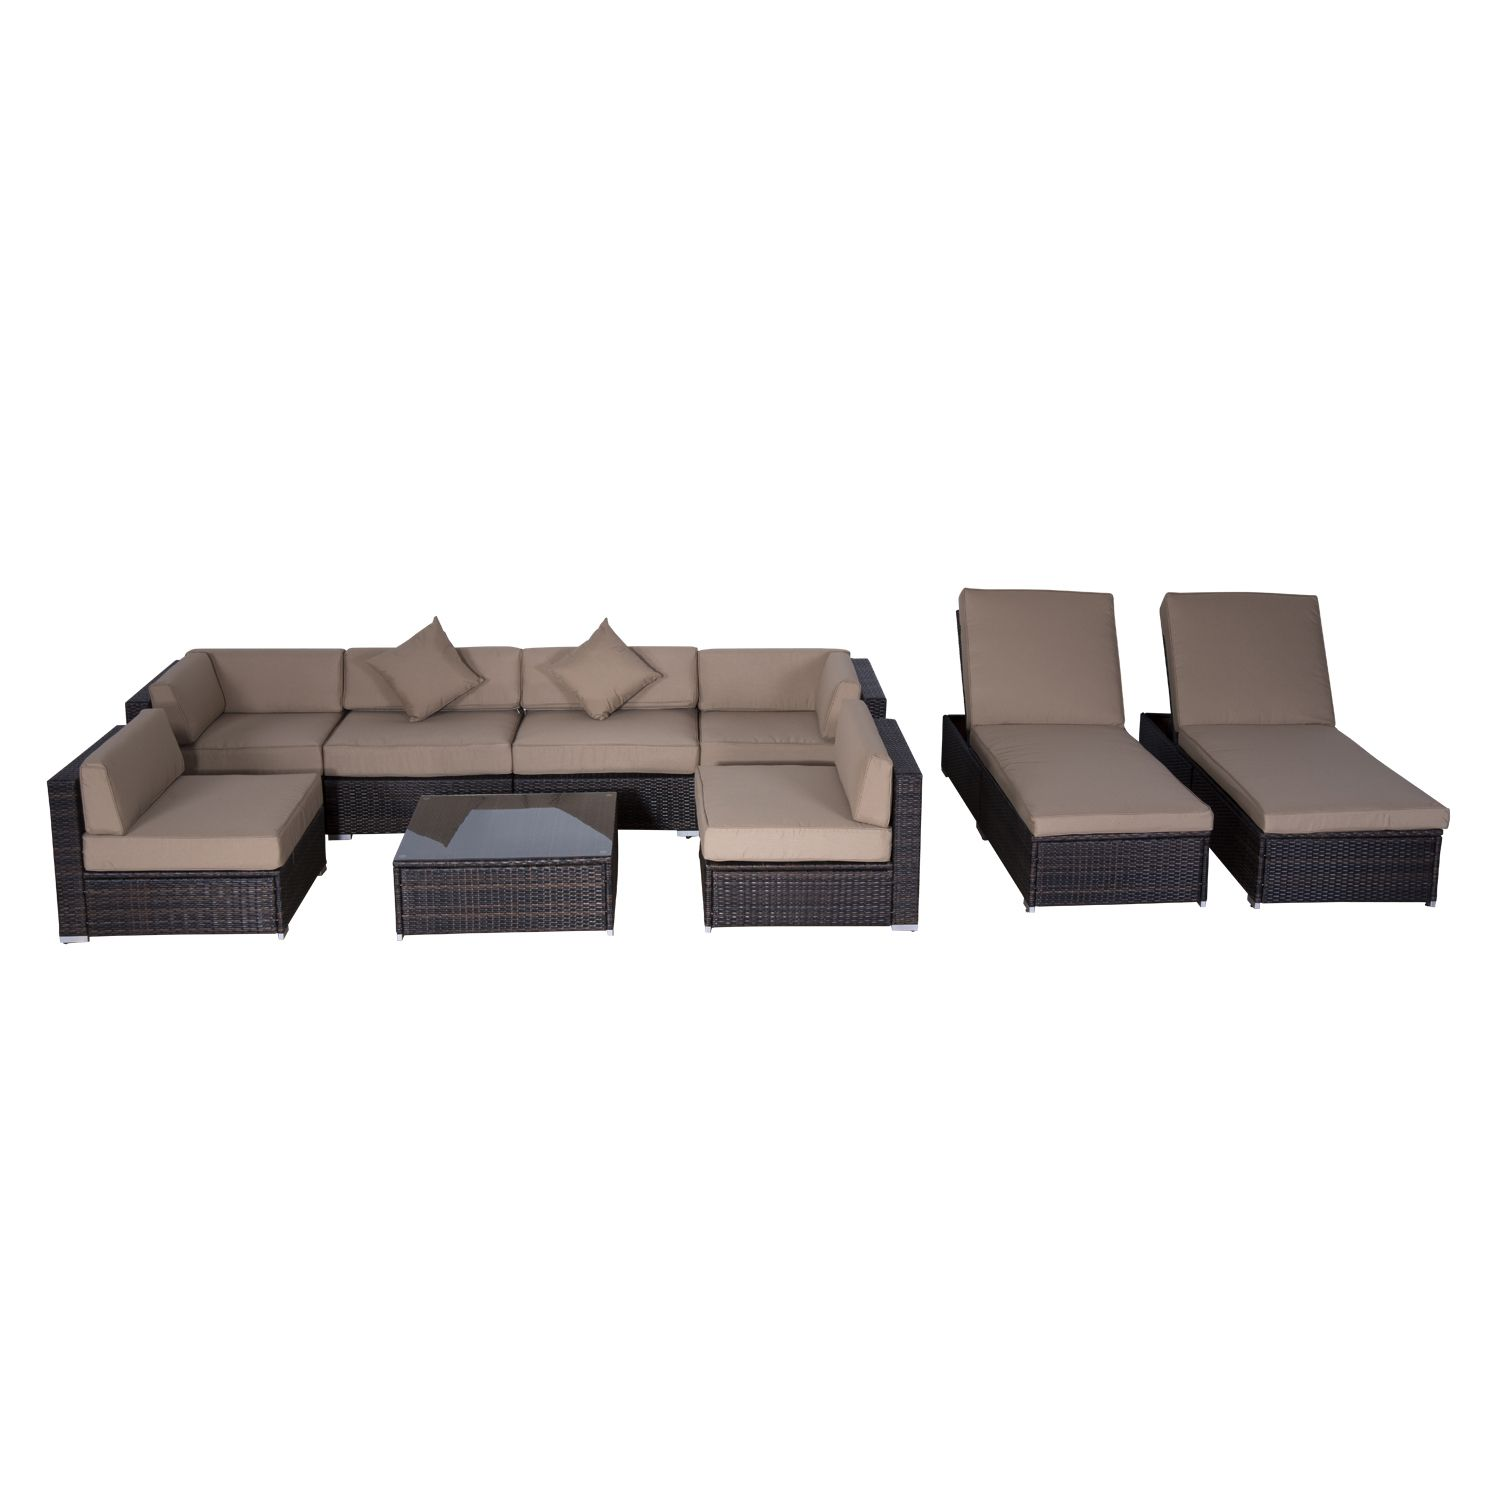 Outsunny 9 pc Outdoor Patio Rattan Wicker Sofa Sectional